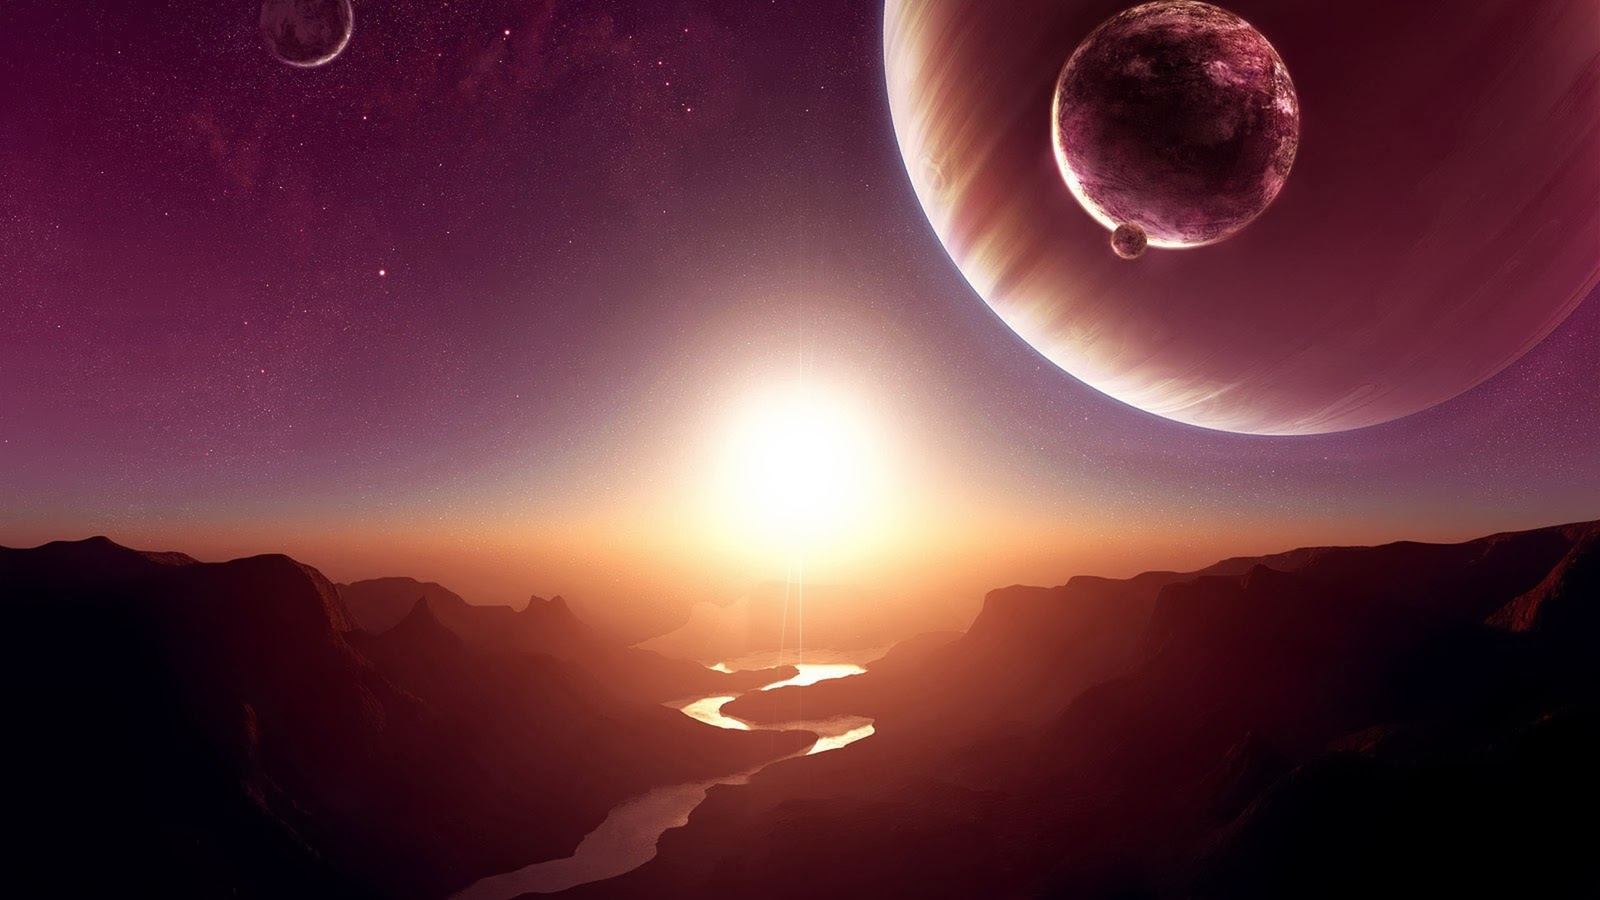 Space Wallpapers High Resolution: Best Space Wallpaper